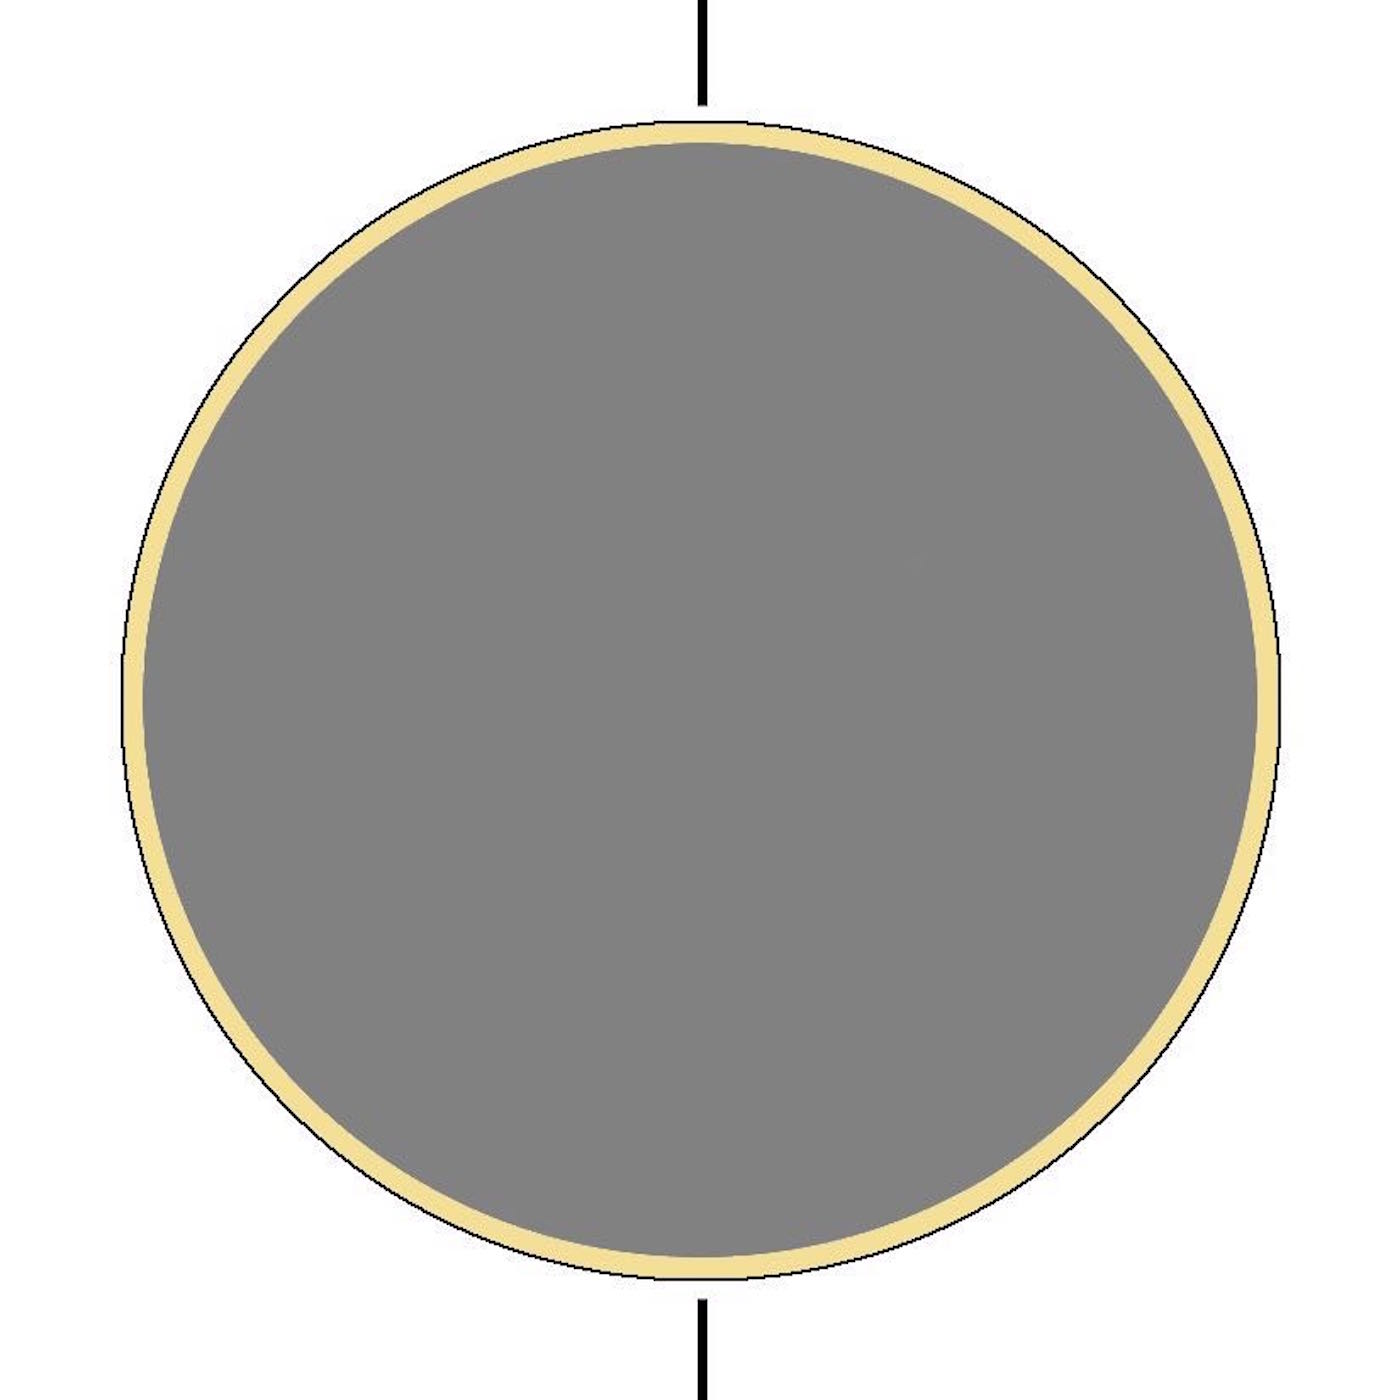 """step 3 - Trim the grey moon circle piece so it is 1/8"""" smaller around than the stencil opening. Center it inside the moon opening. With Blonde Ambition paint, spray between the grey piece and the stencil edges to create a solid circular yellow line."""